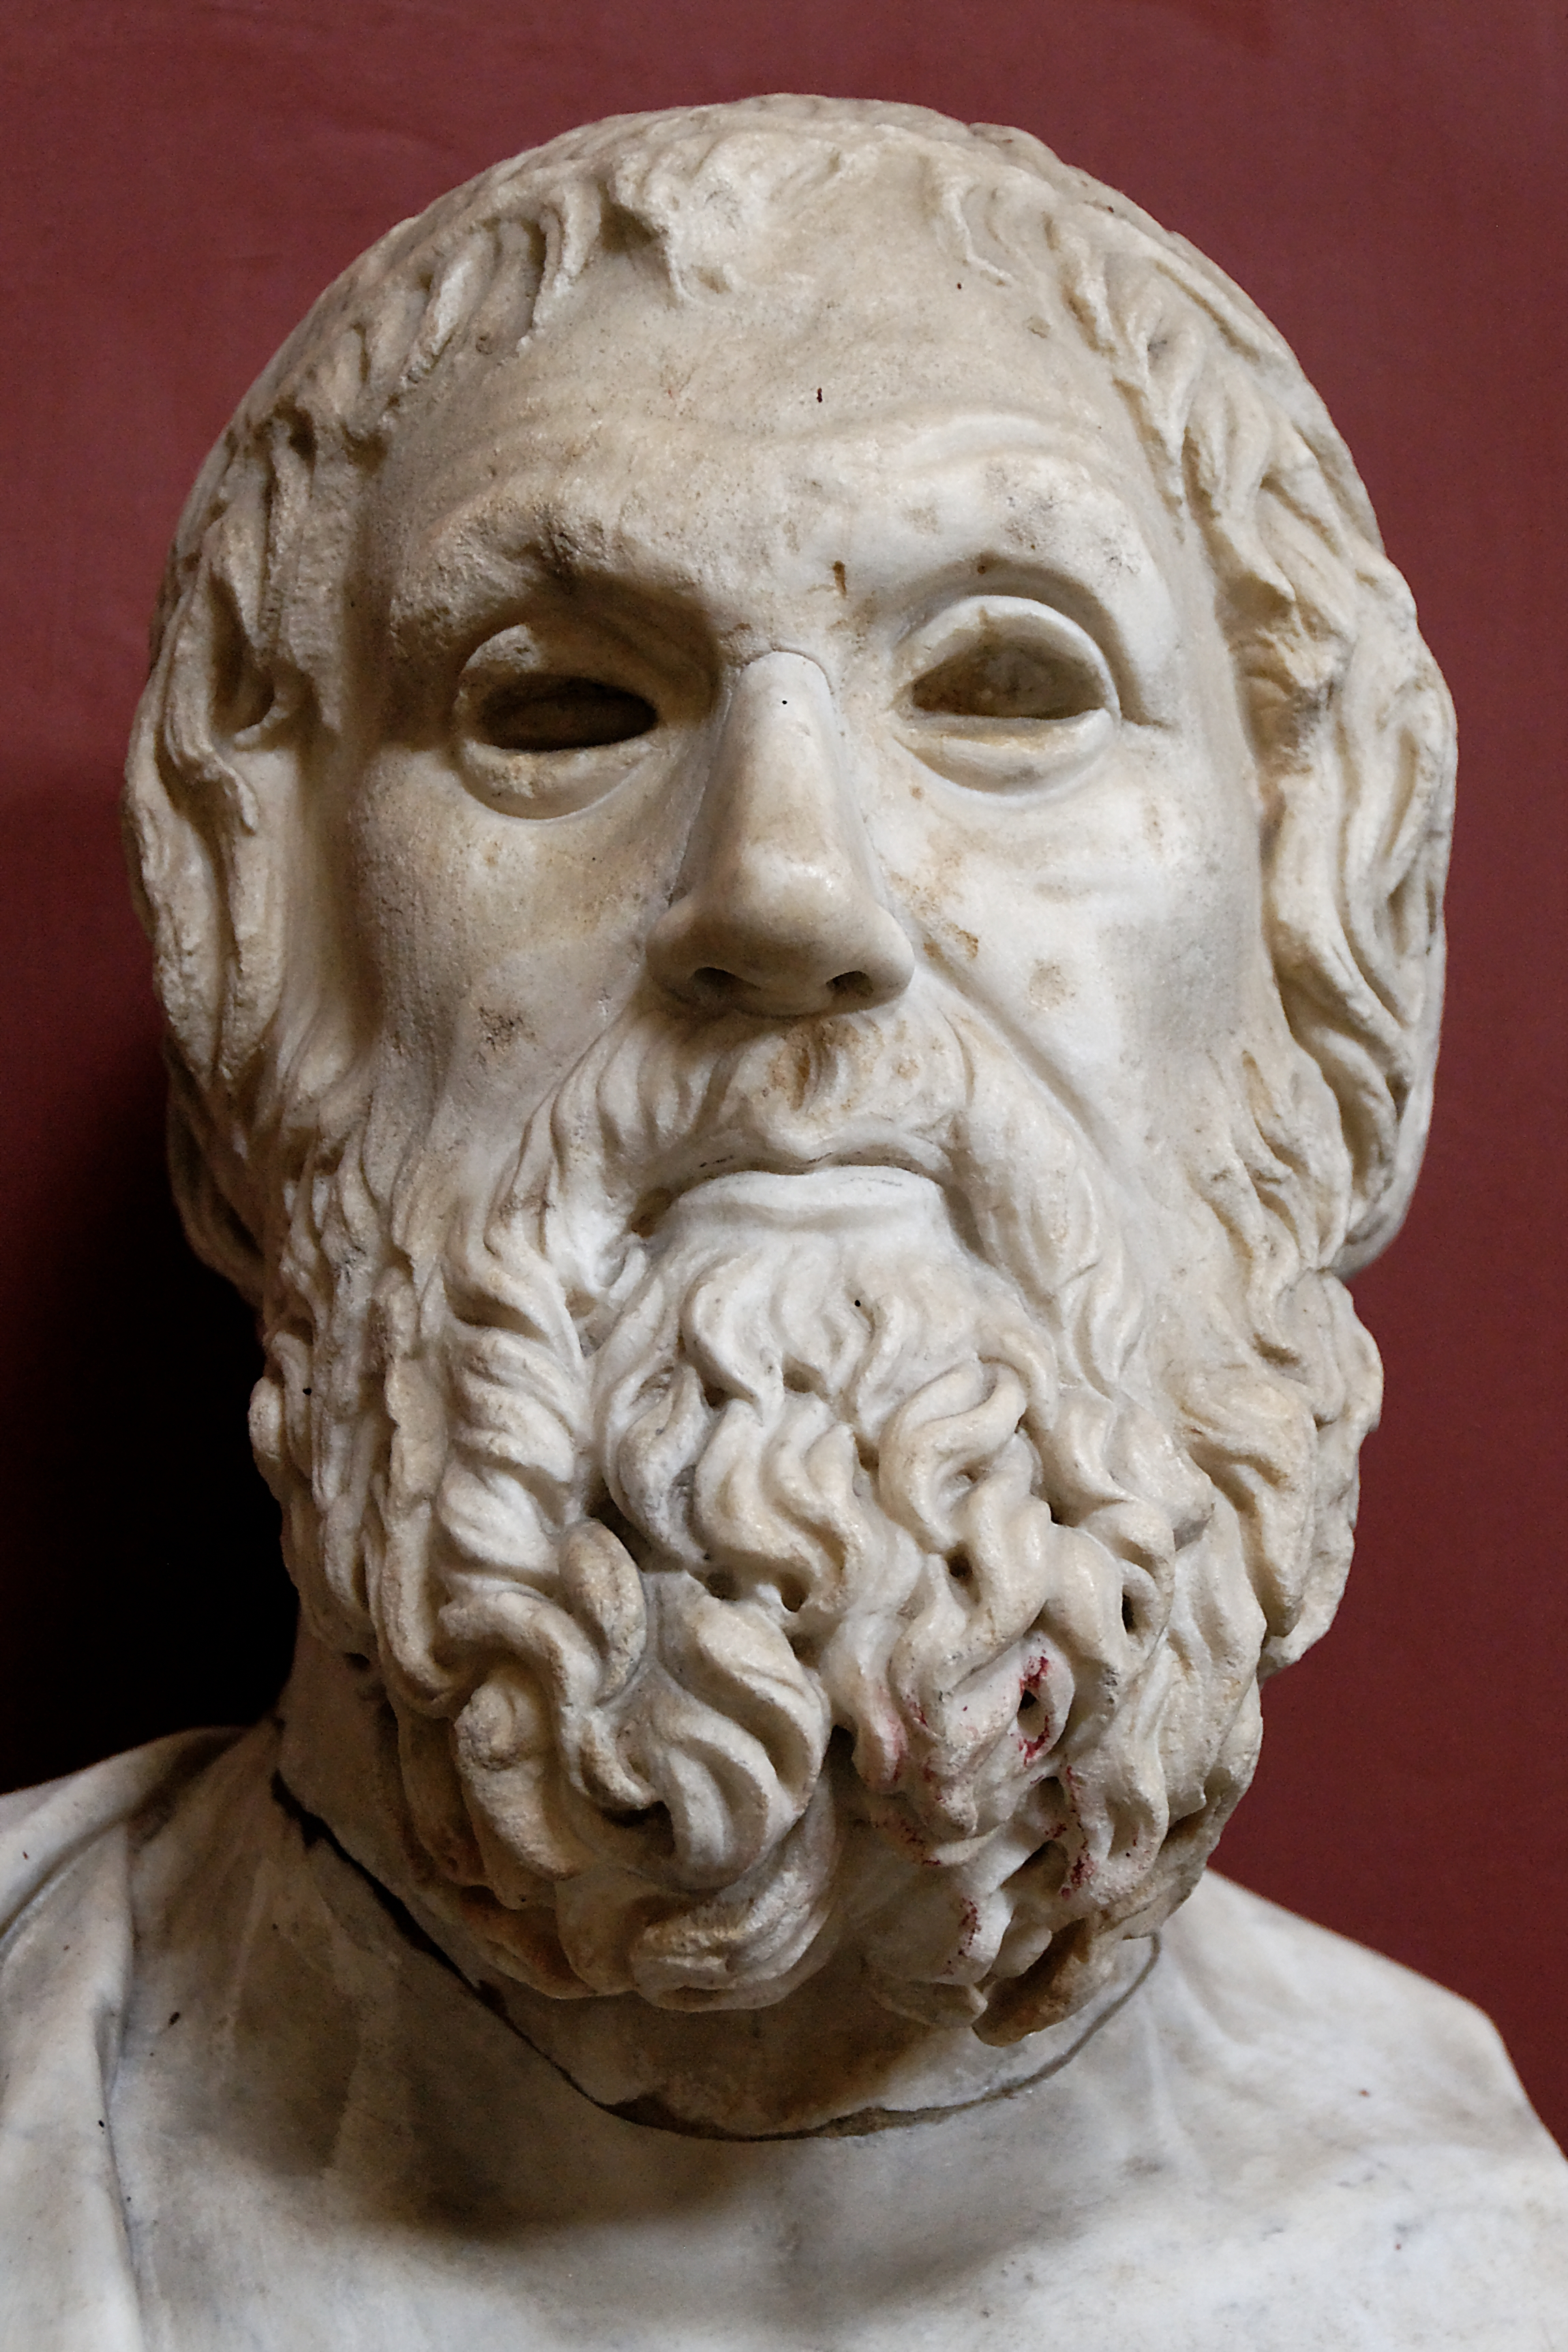 an analysis of a master artisan of tragedy sophocles An analysis of sophocles' tragedy, oedipus rex, from an archetypal viewpoint sophocles is considered the master of greek drama and oedipus rex the most.